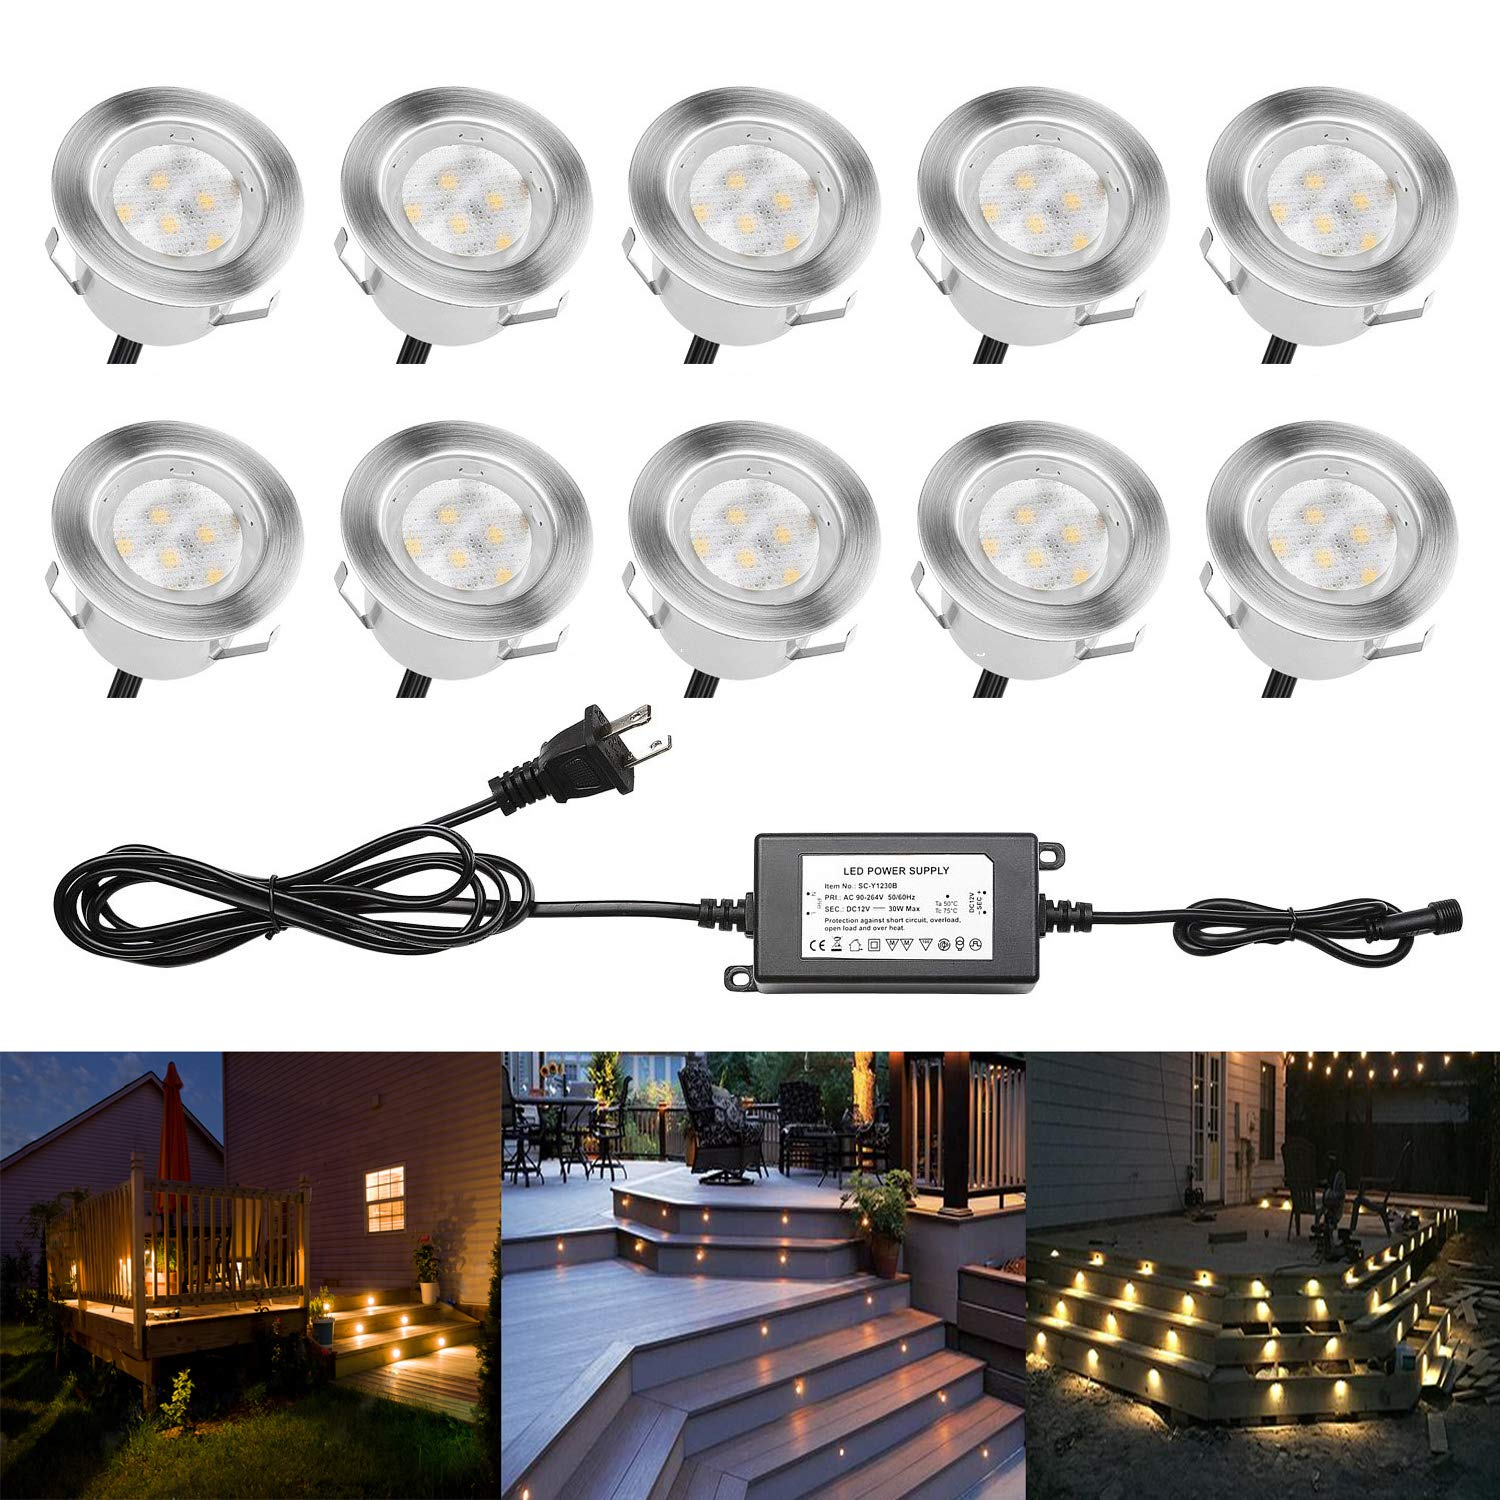 Low Voltage LED Deck Lighting Kit Stainless Steel Waterproof Outdoor Step Lights for Landscape Garden Yard Patio Step Decoration Lamps(10 Piece/Warm White)